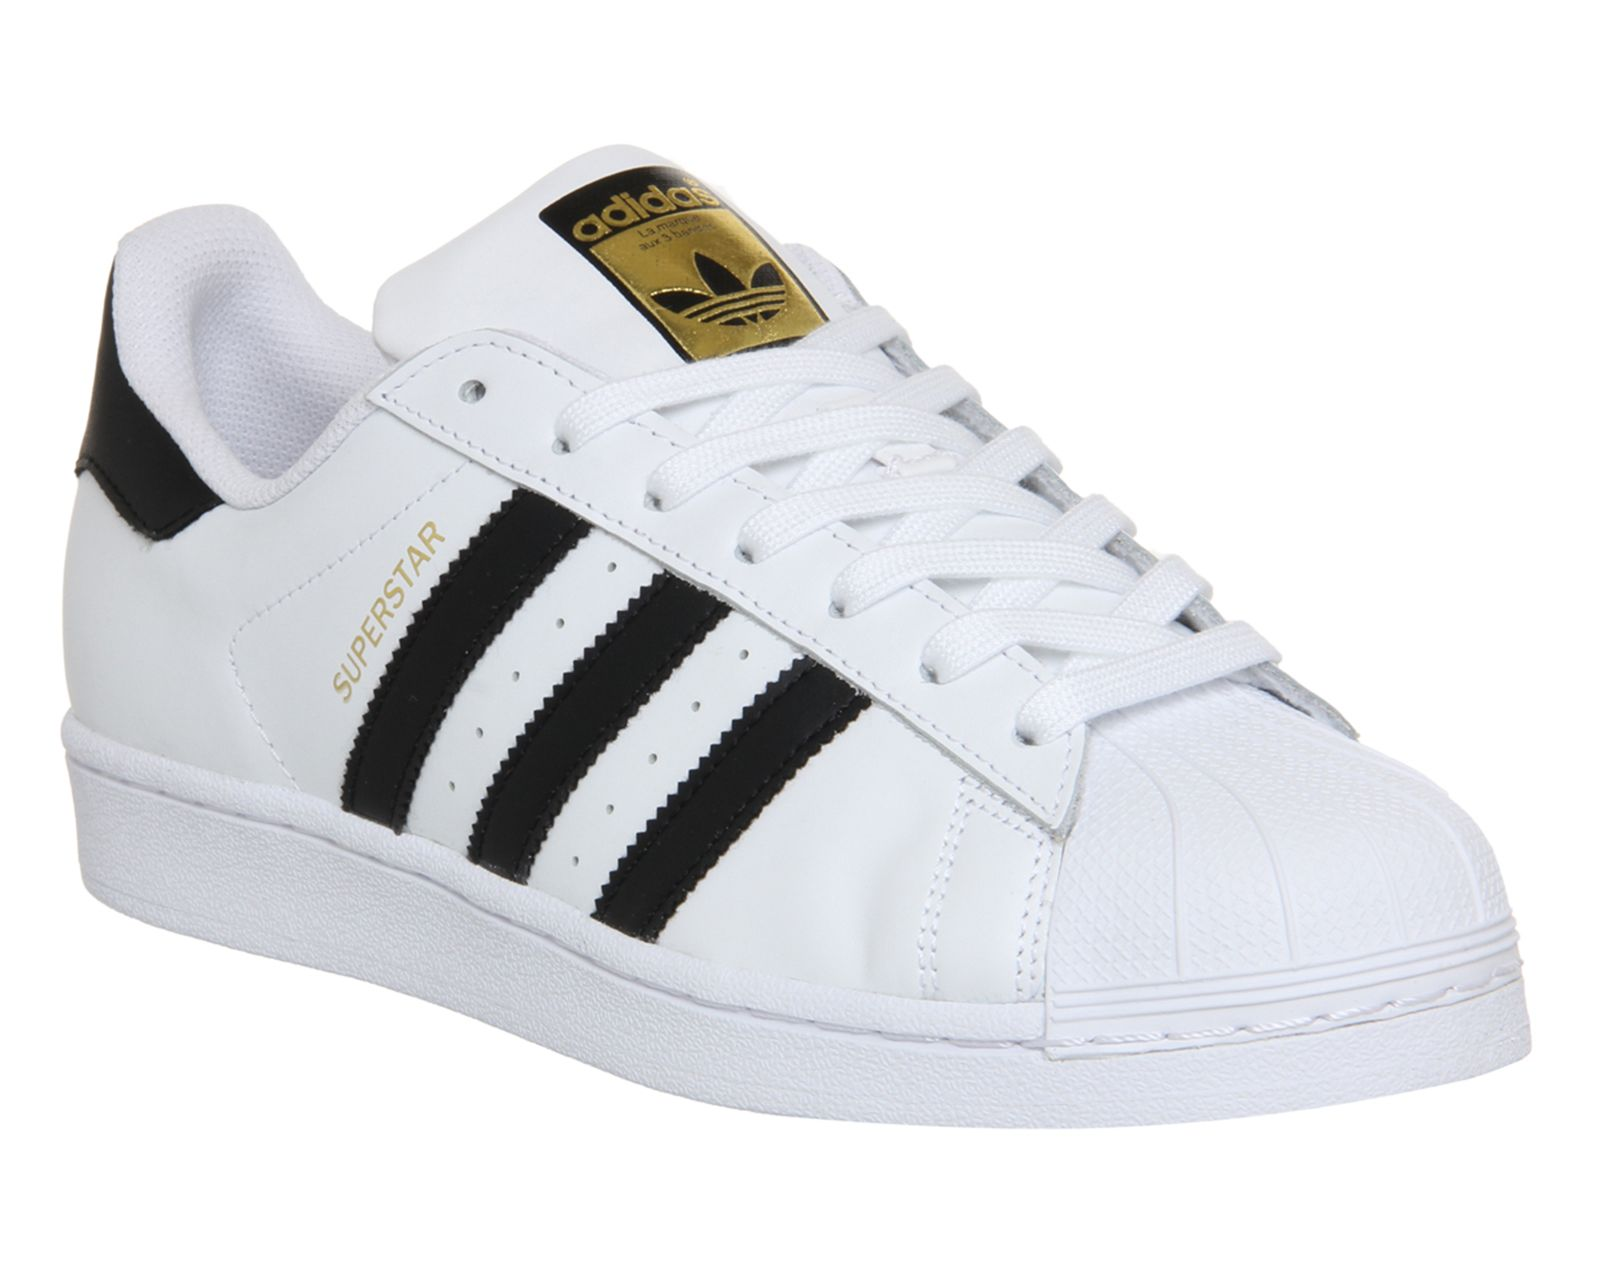 Adidas Super Star (GS) White Black Gold Women/Boys/Girls Trainers All Sizes